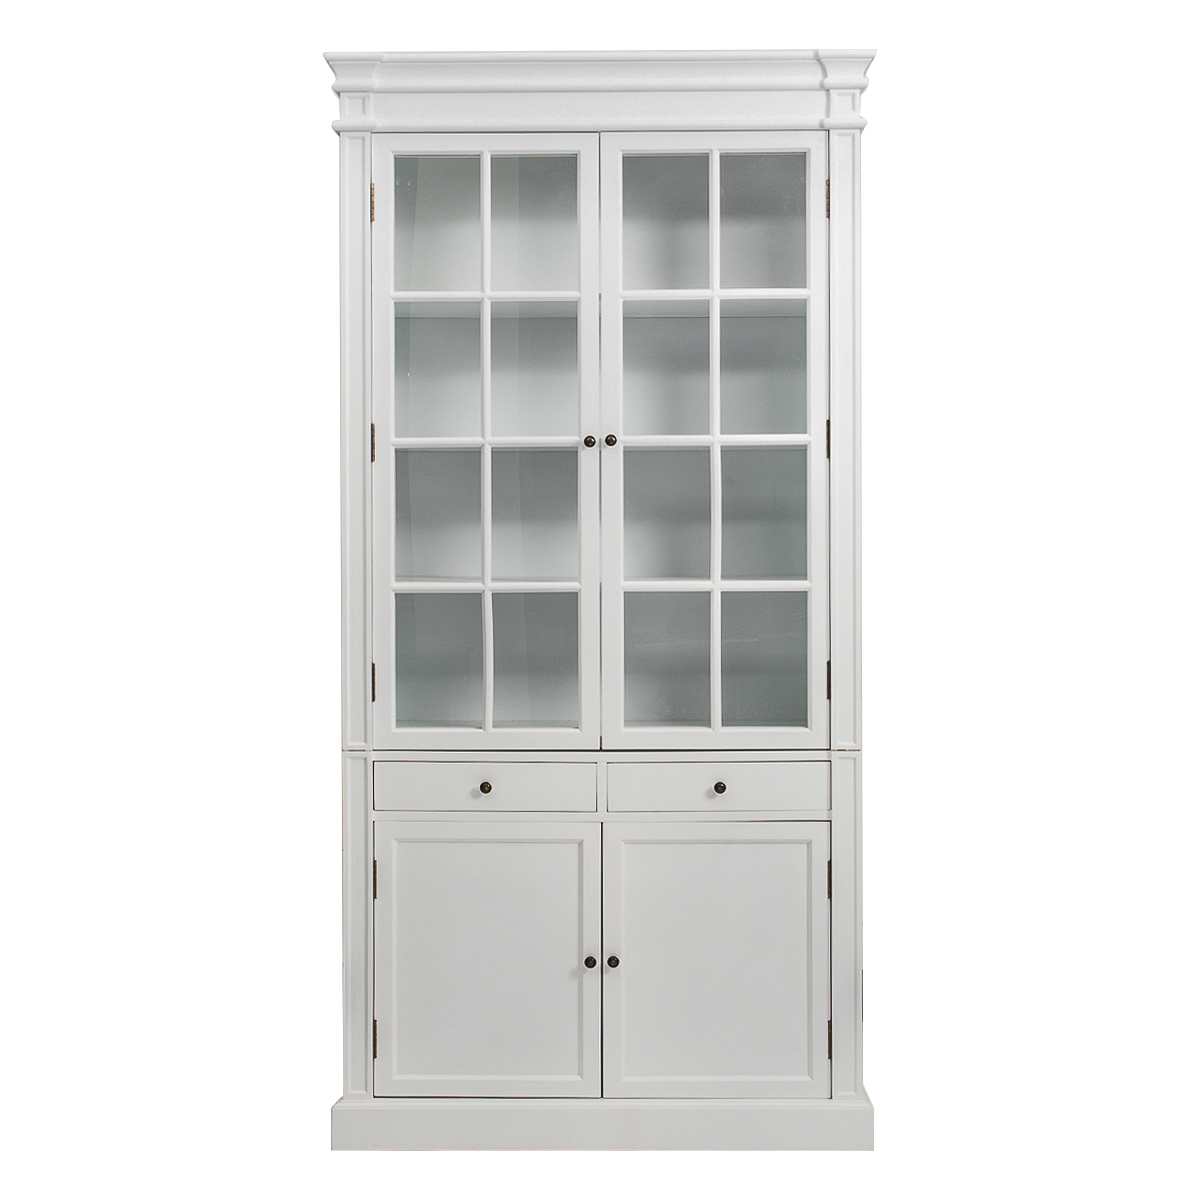 French Glass Kitchen Cabinet Doors: French Provincial Furniture Glass Door Bookcase Cabinet